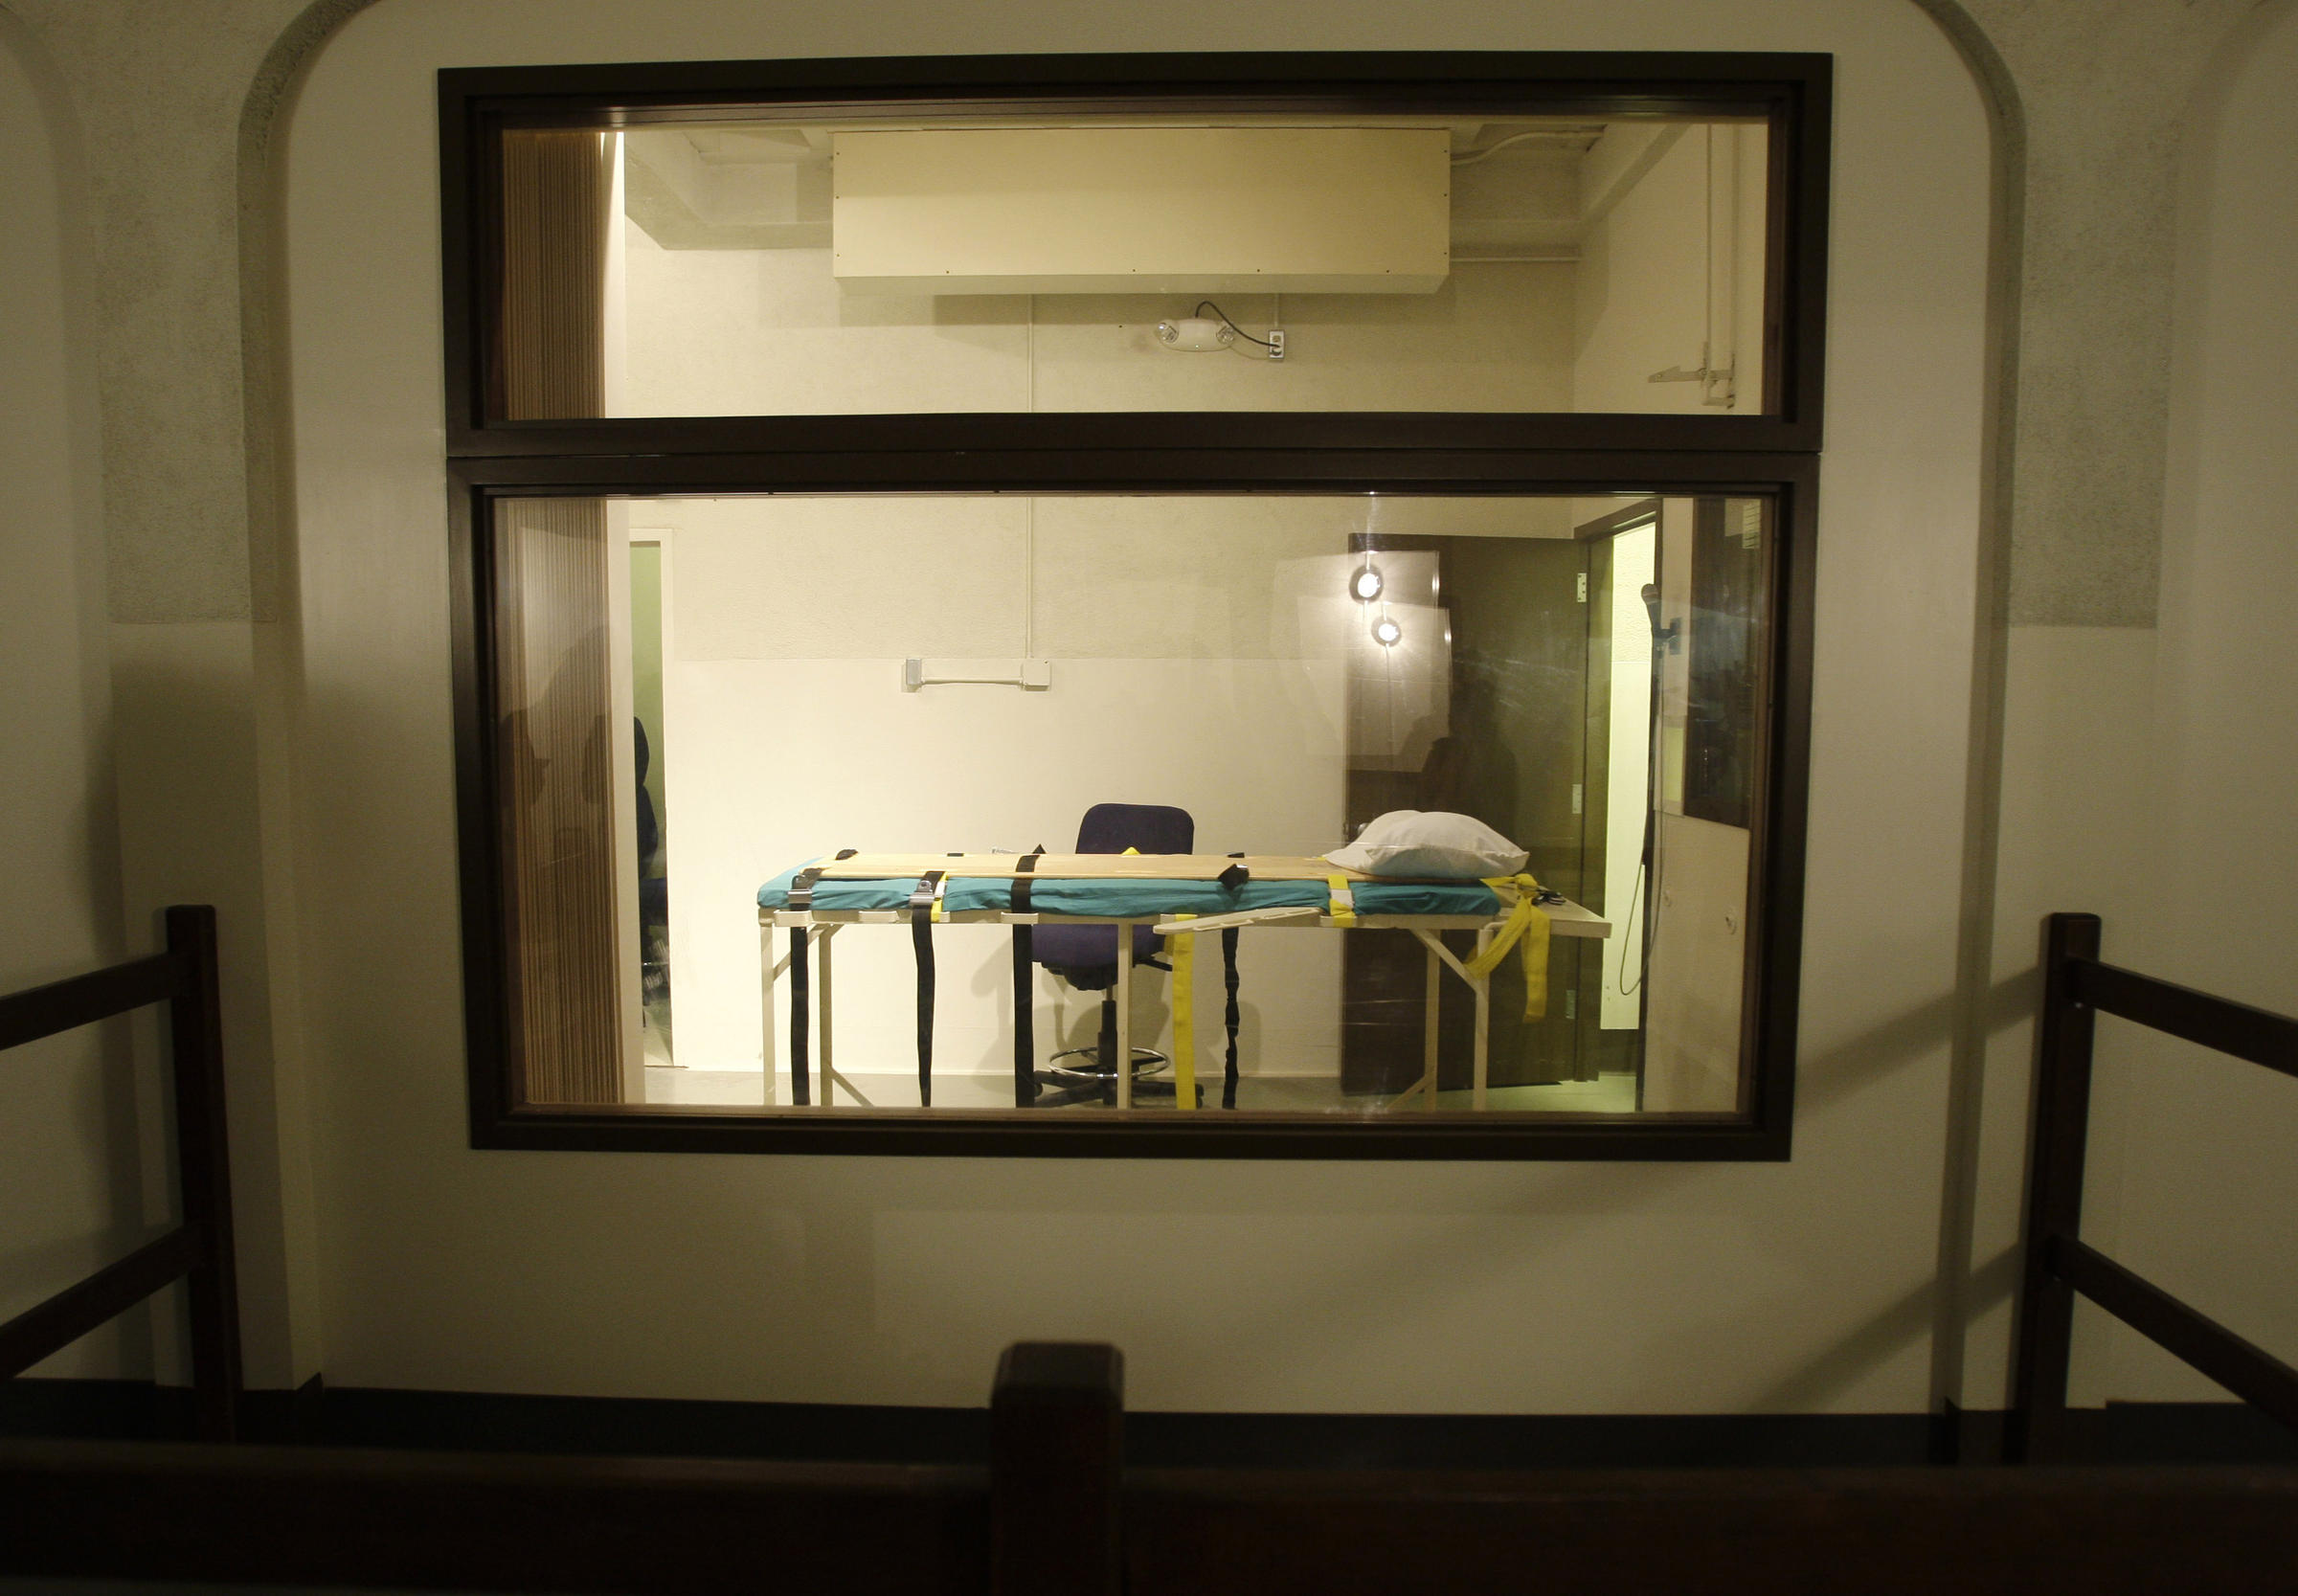 Former Head Of Washington Corrections Supports Death